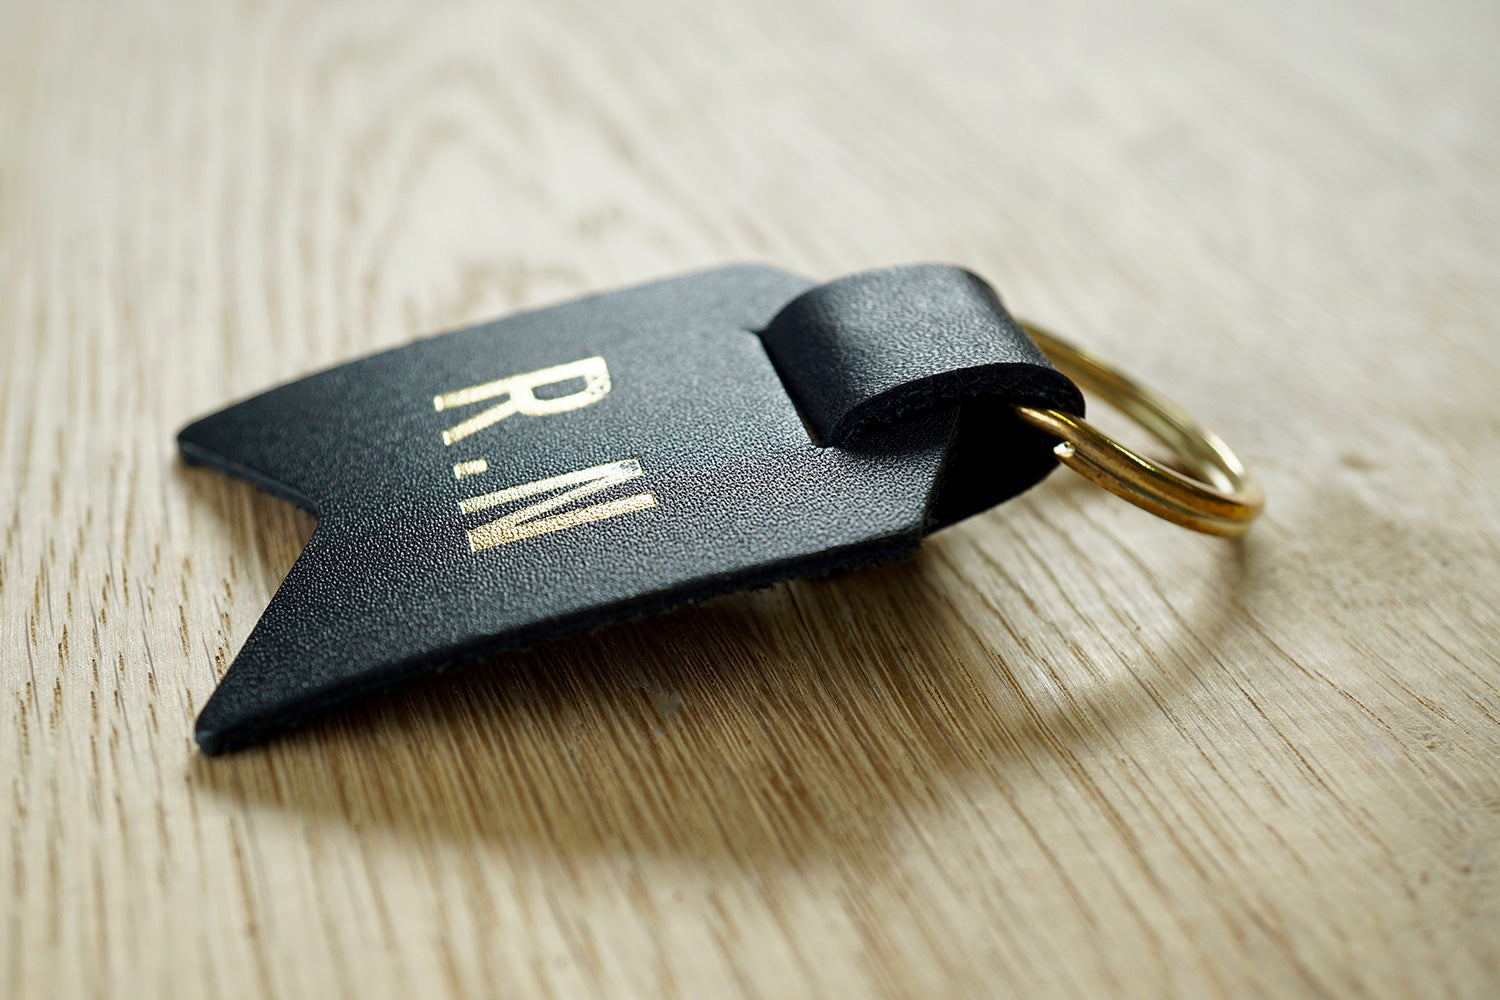 Monogram keychain from Bookshell bindery can monogrammed with 1 or 2 initials